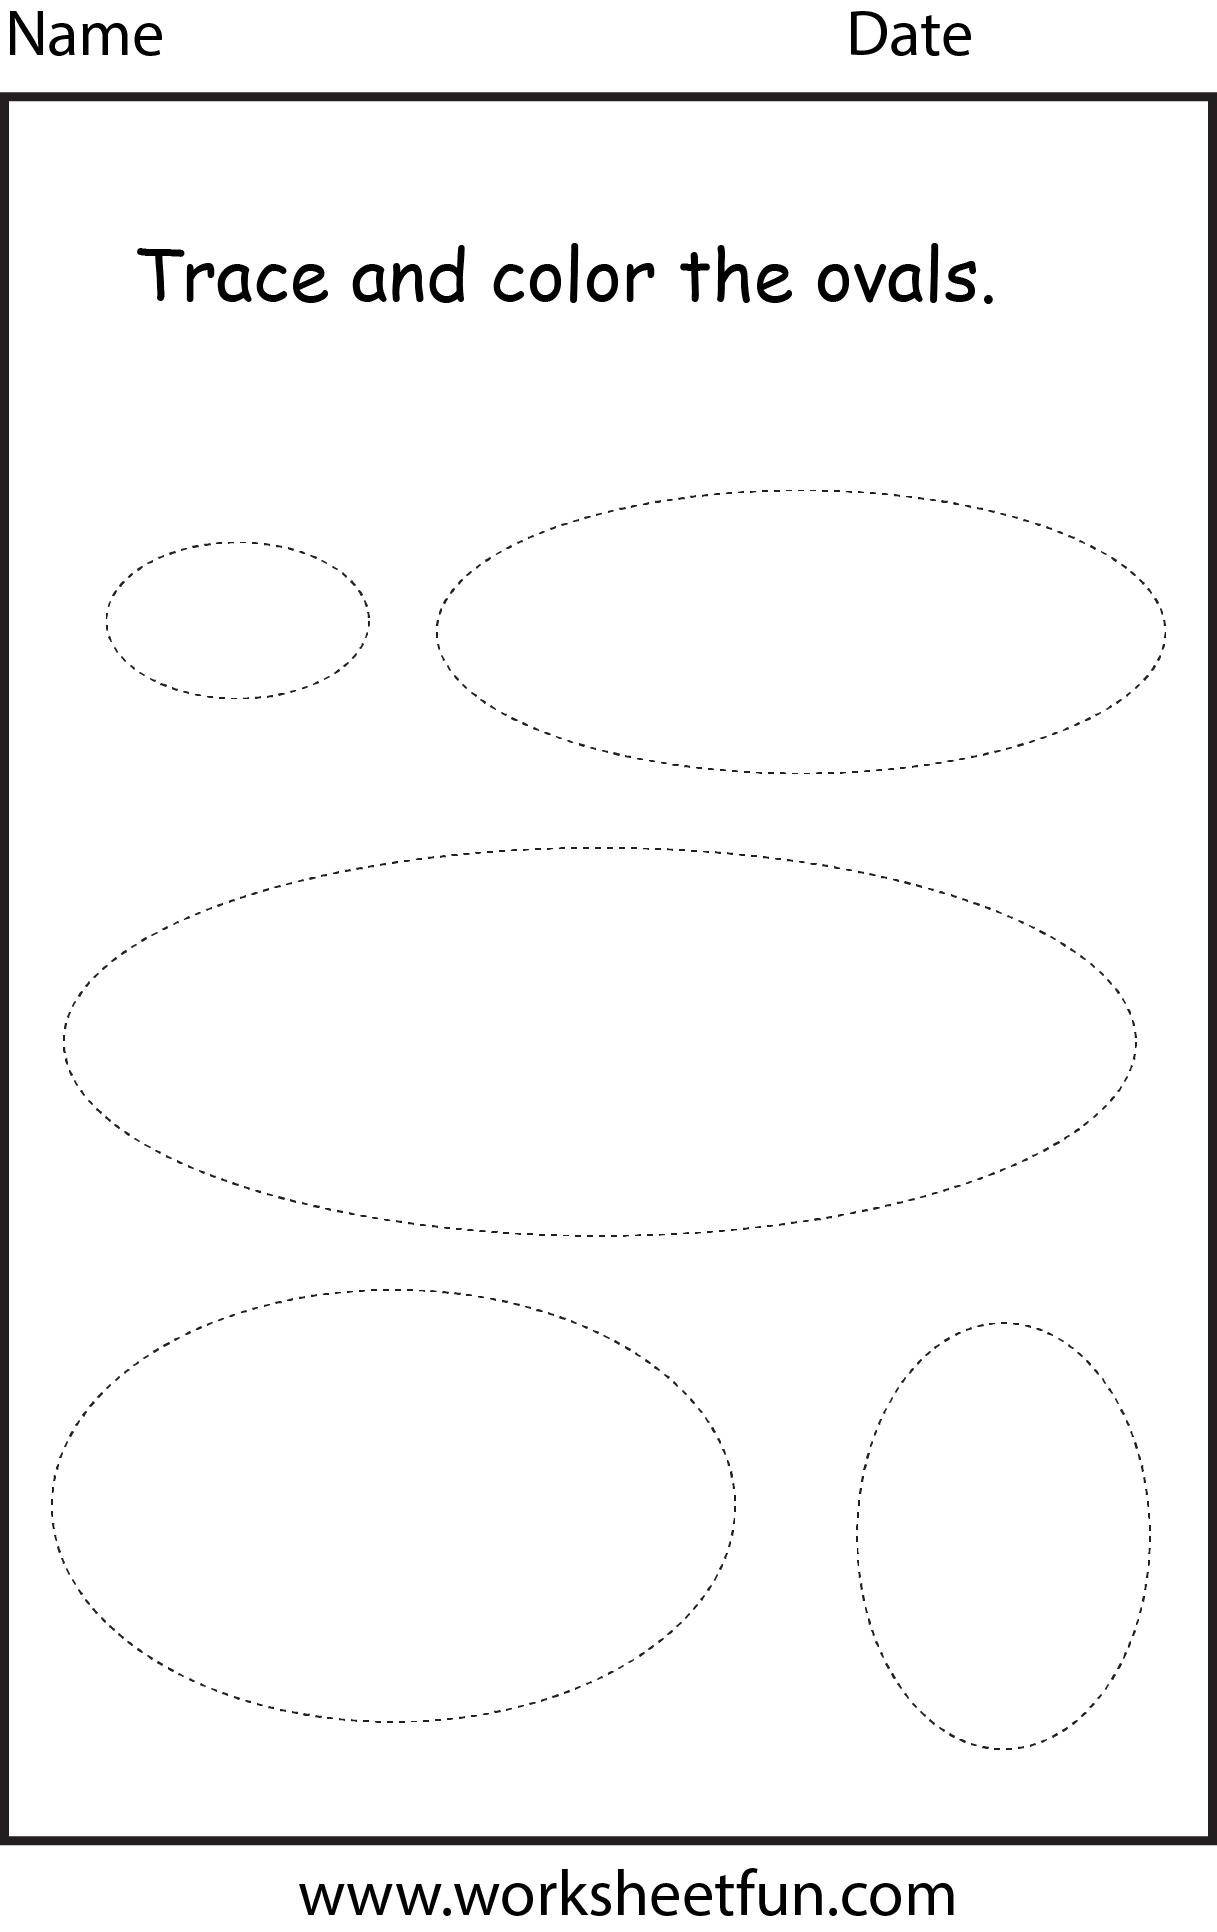 5 Images of Oval Worksheets Free Printable